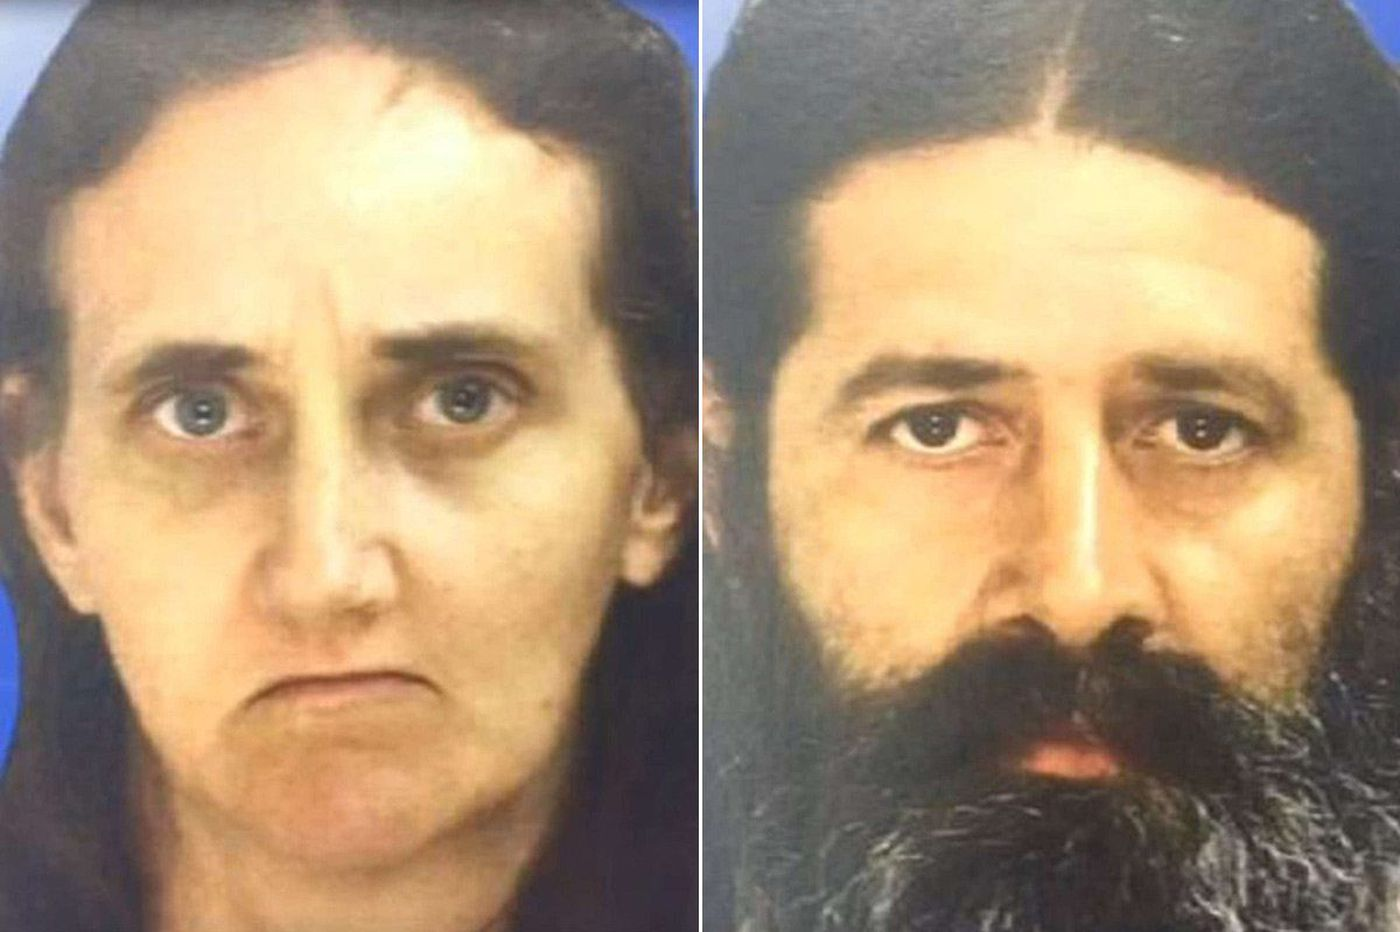 Parents sentenced to up to 7 years in 'gifted' girls case